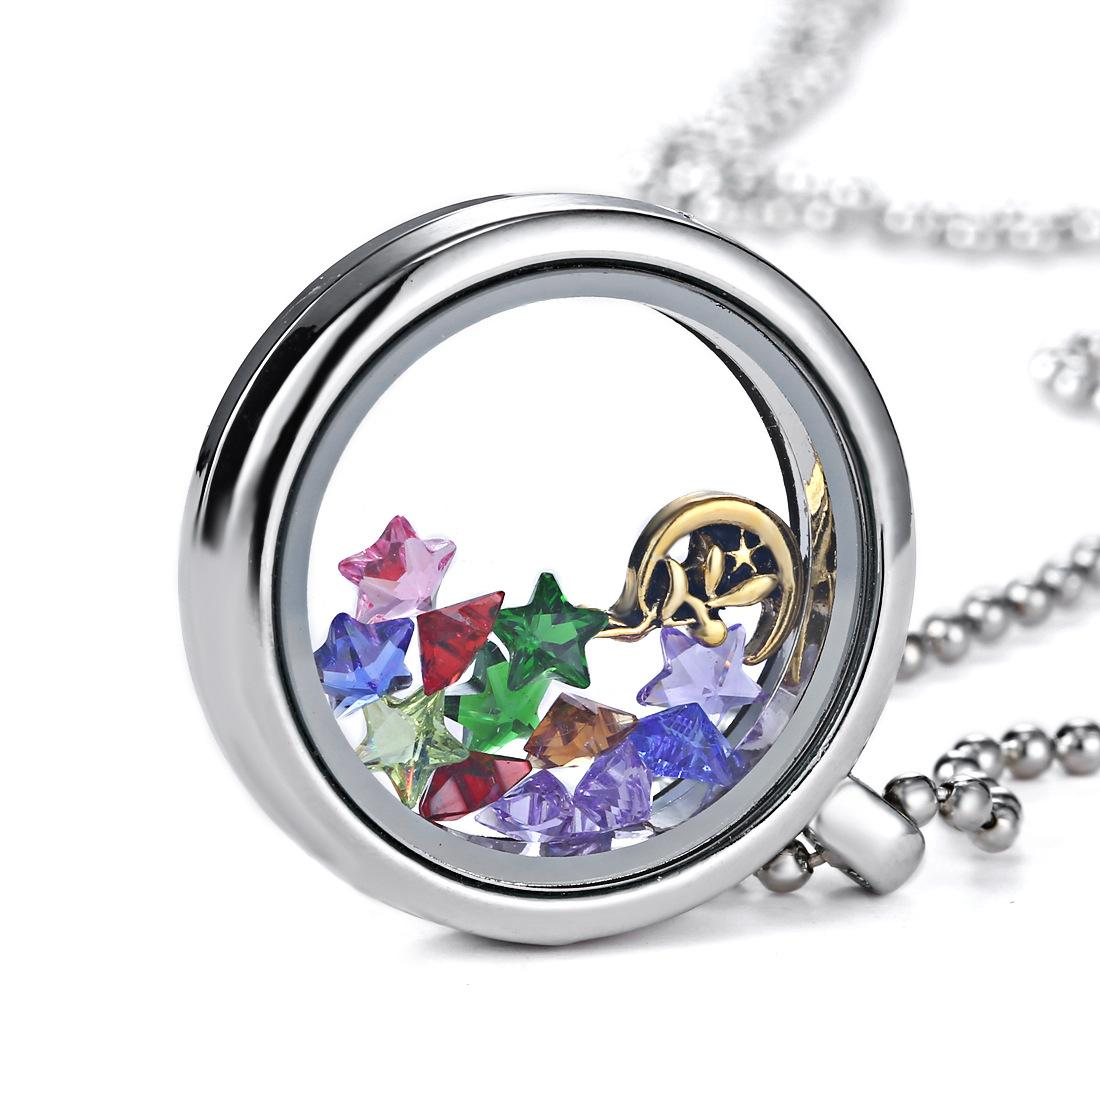 Silver Heart magnetic glass floating charm locket Zinc Alloy chains included for free free ship